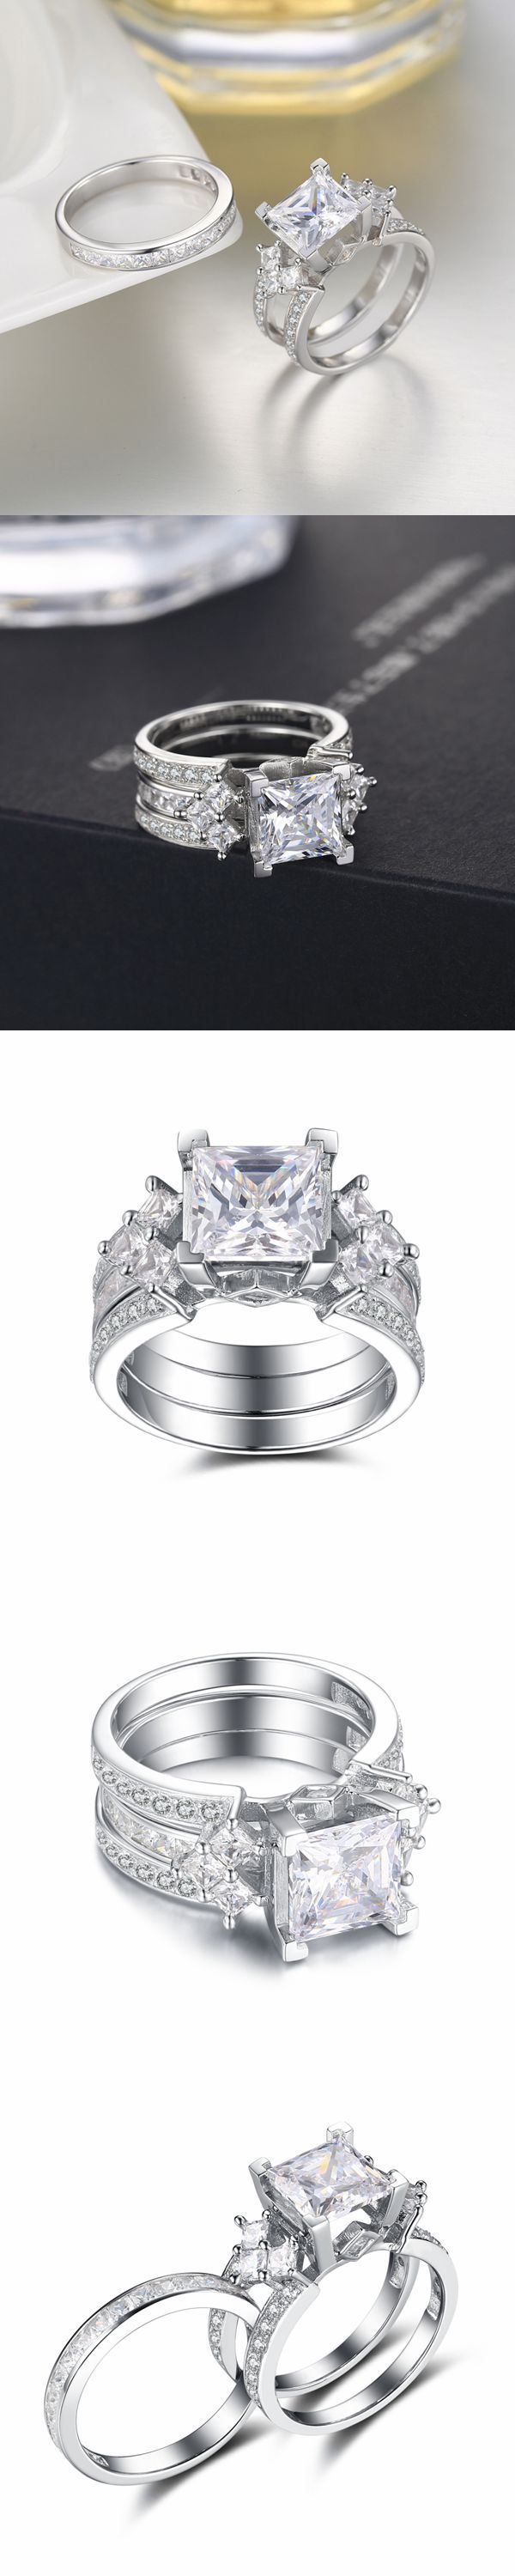 Lajerrio Jewelry Princess Cut White Sapphire S925 Ring Sets